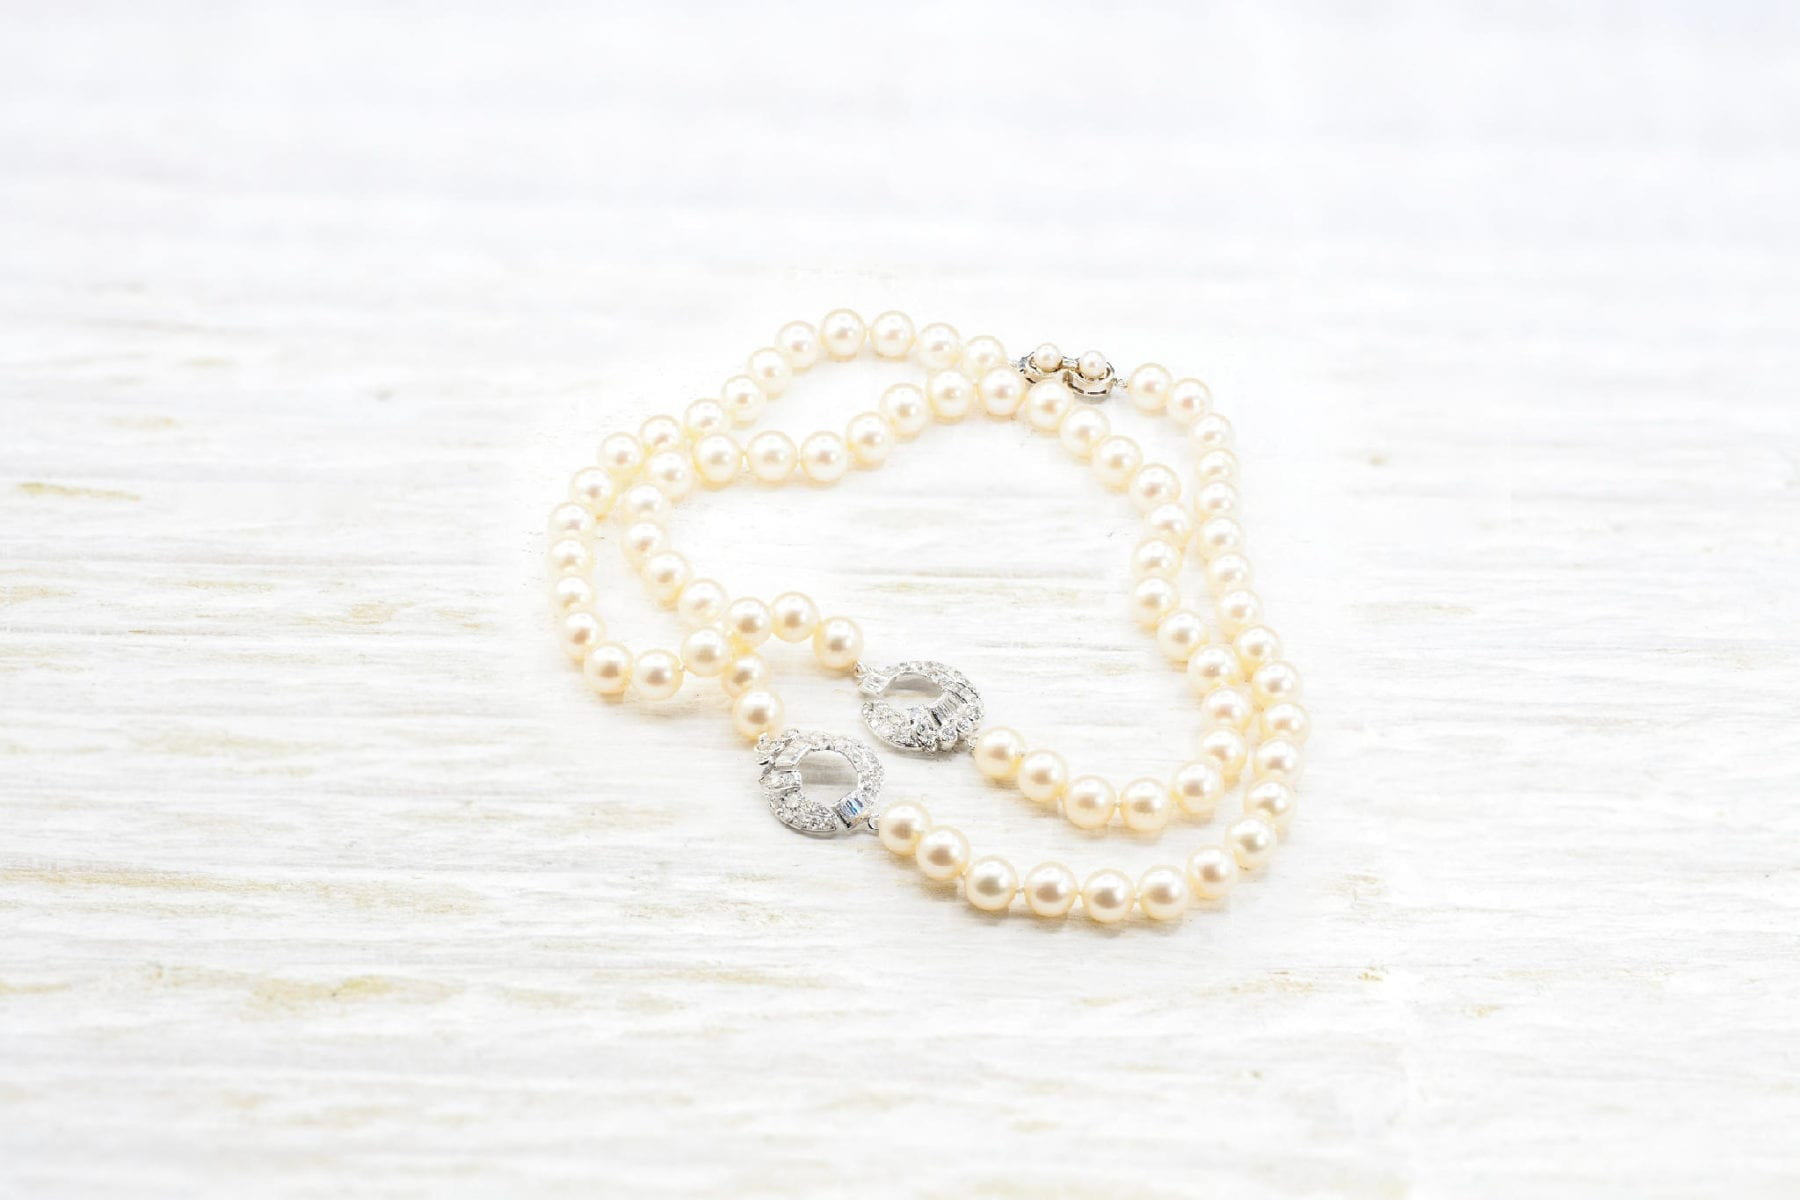 18k white gold pearls necklace